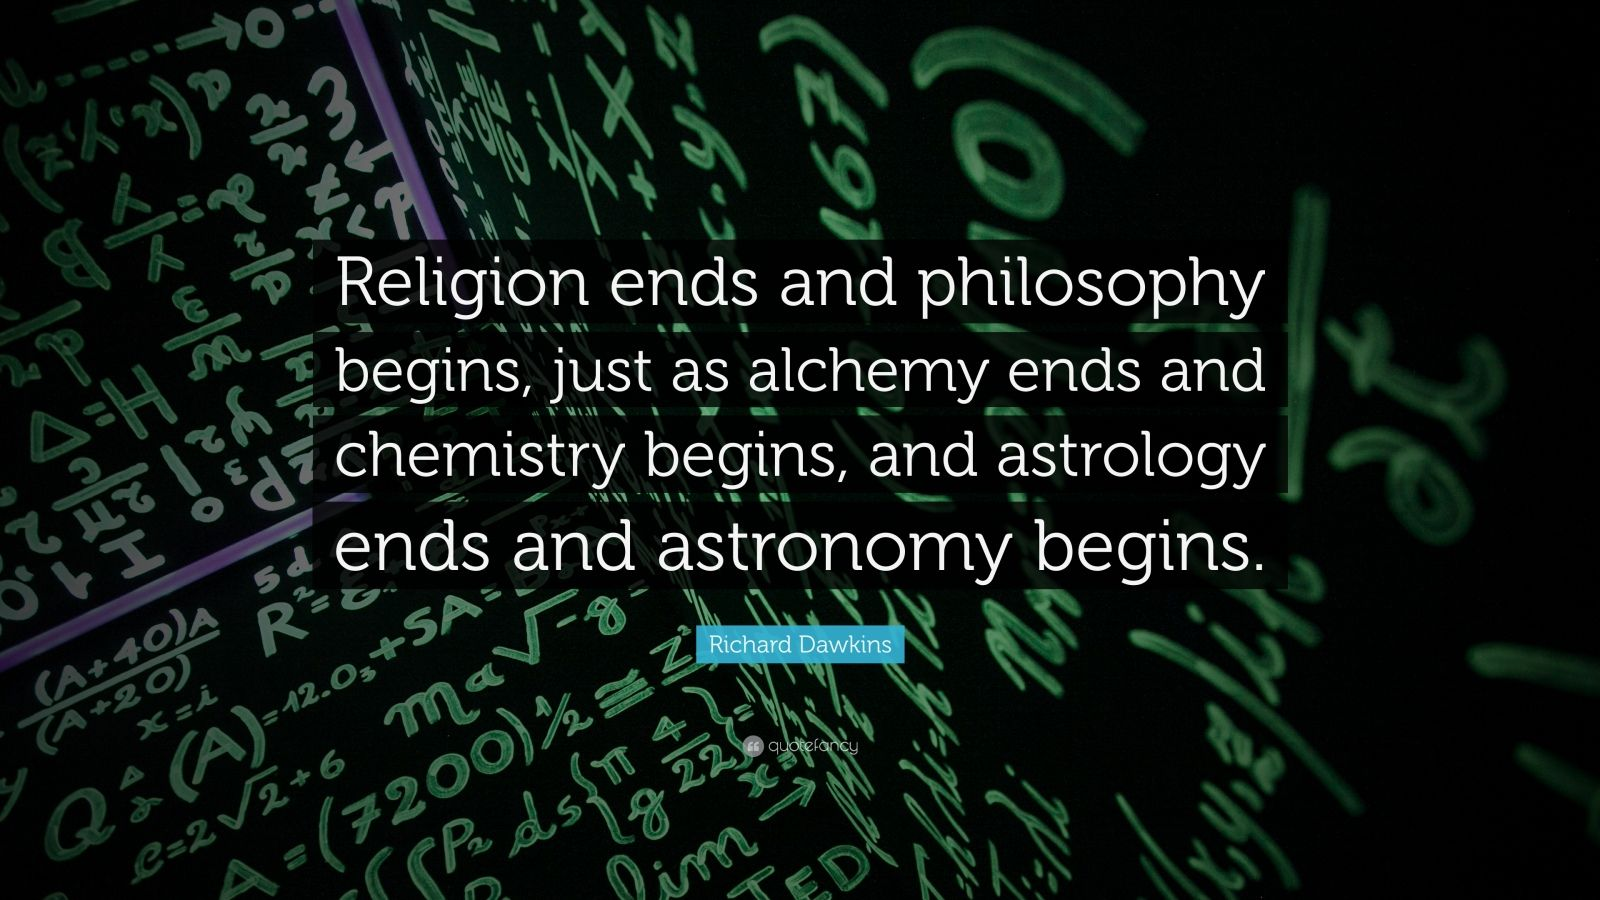 """Richard Dawkins Quote: """"Religion ends and philosophy begins, just as alchemy ends and chemistry begins, and astrology ends and astronomy begins."""""""